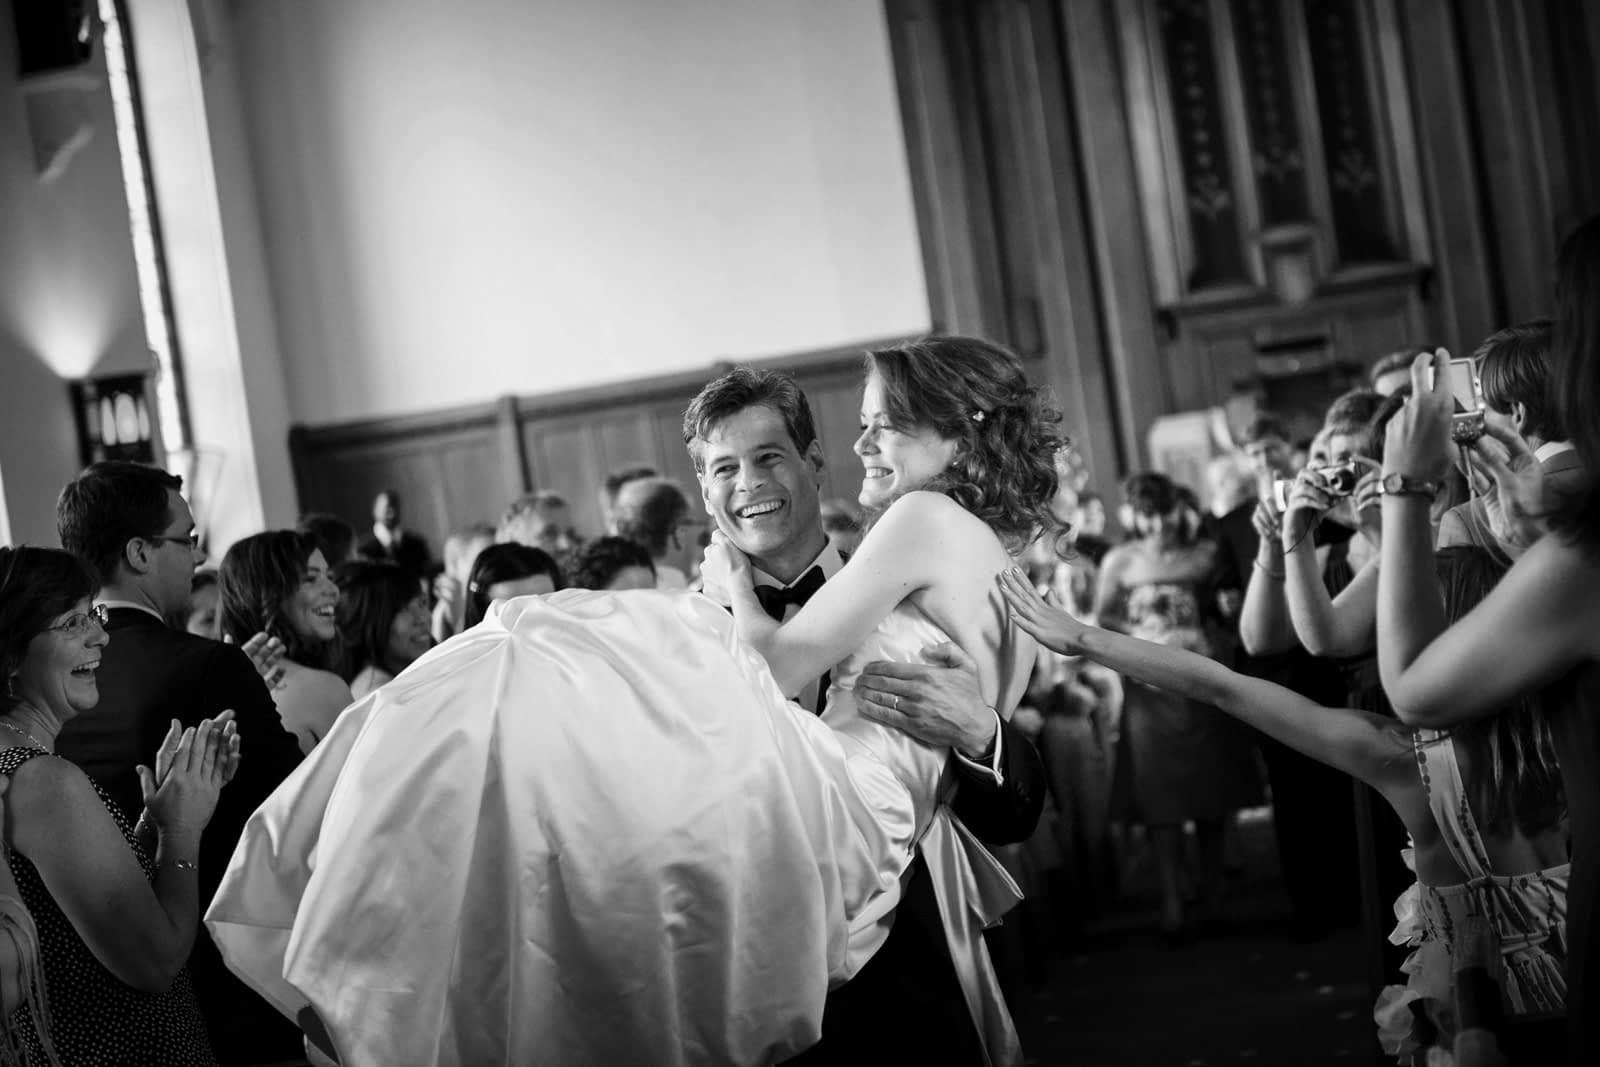 Groom carrying bride down aisle and a guest's hand reaches out to touch her from the crowd